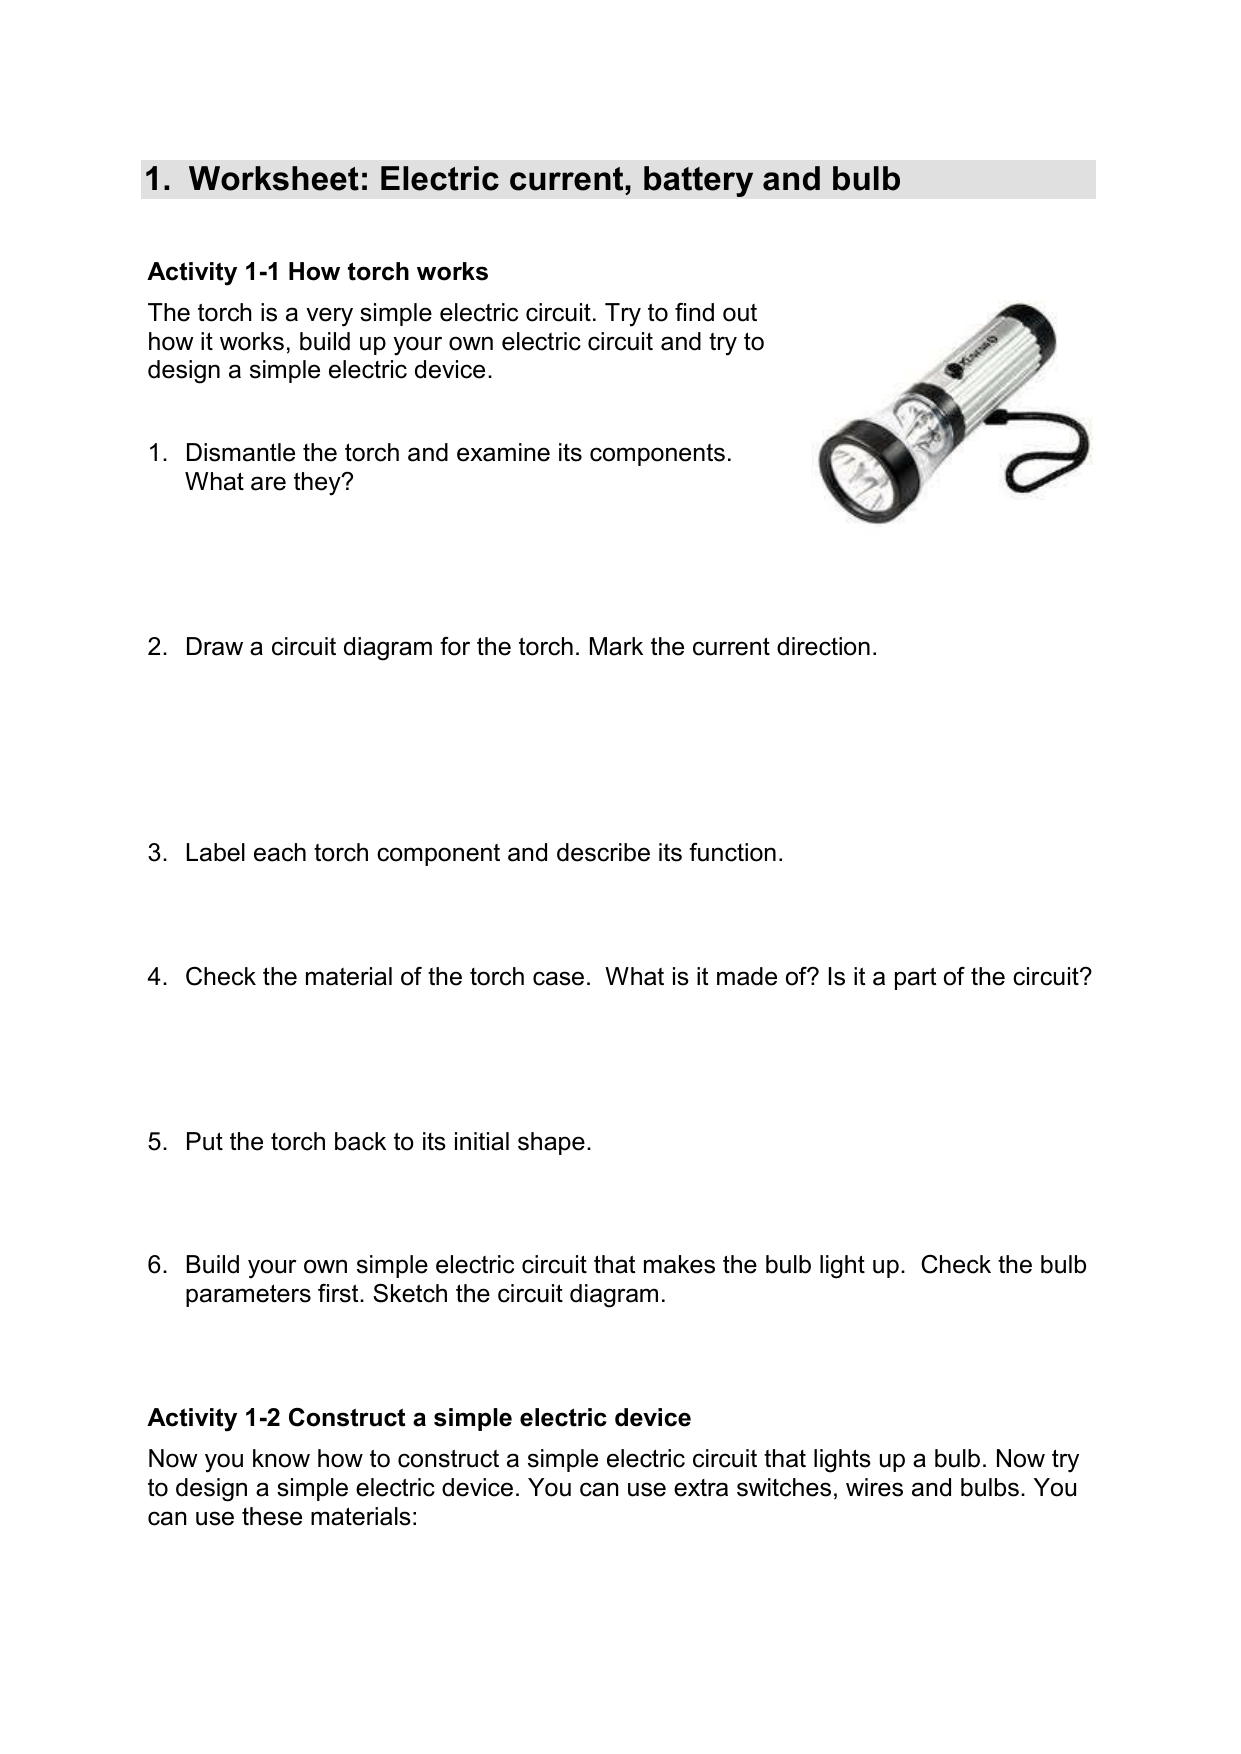 Worksheet Electric Current Battery And Bulb